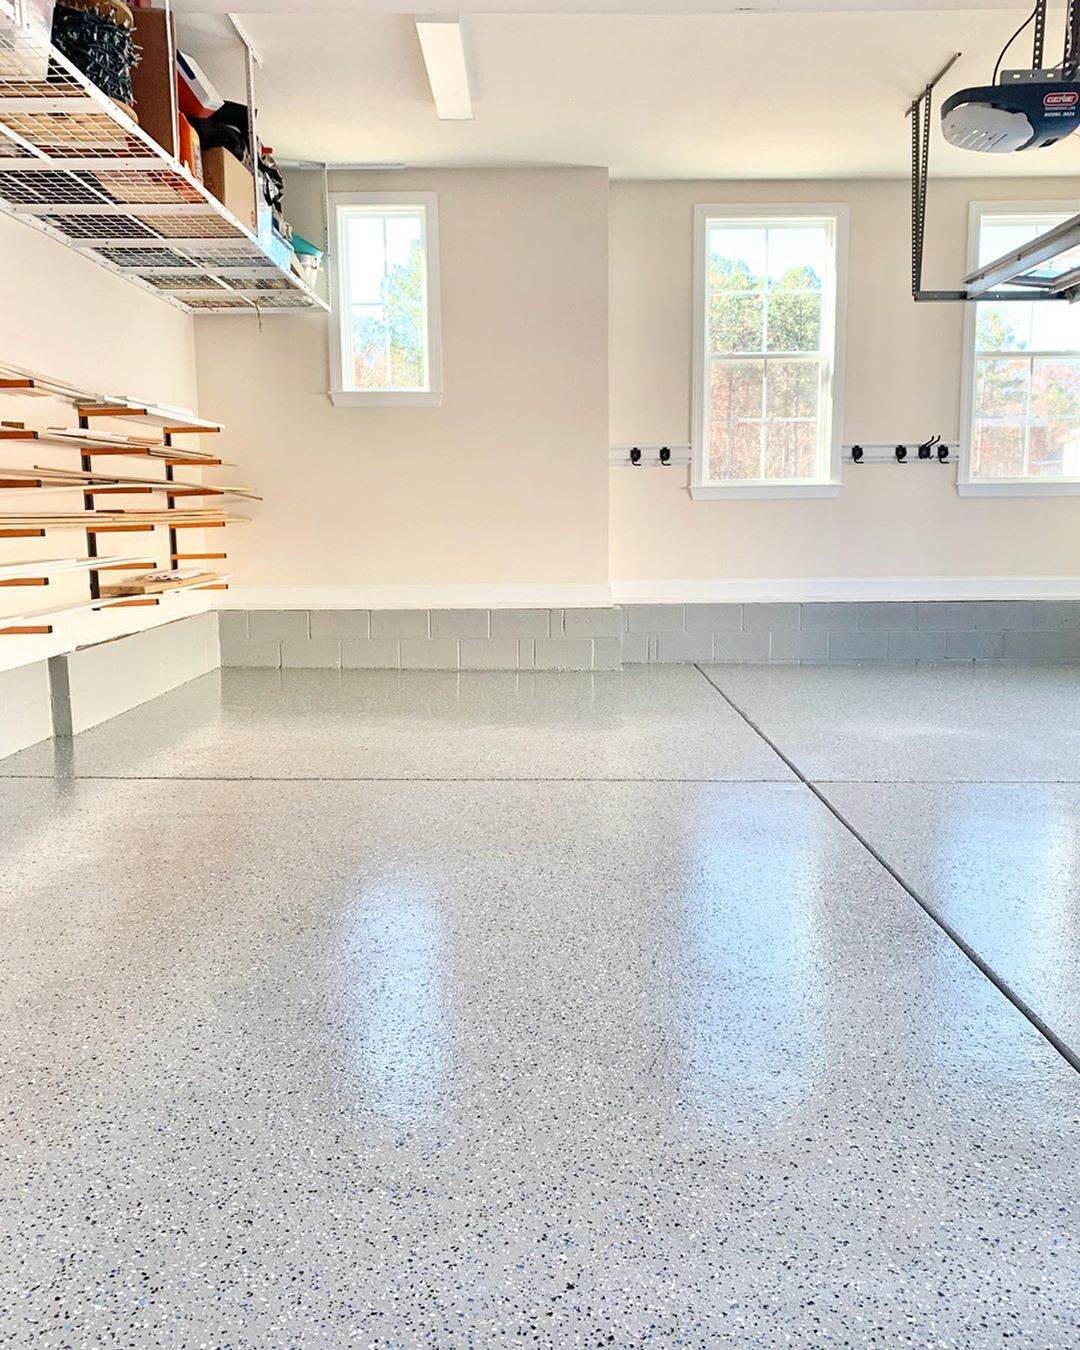 Philip Or Flop On Instagram The Garage Floors Are Done Swipe To See The Before Picture From Just A Few Wee In 2020 Garage Floor Epoxy Garage Floor Garage Floors Diy